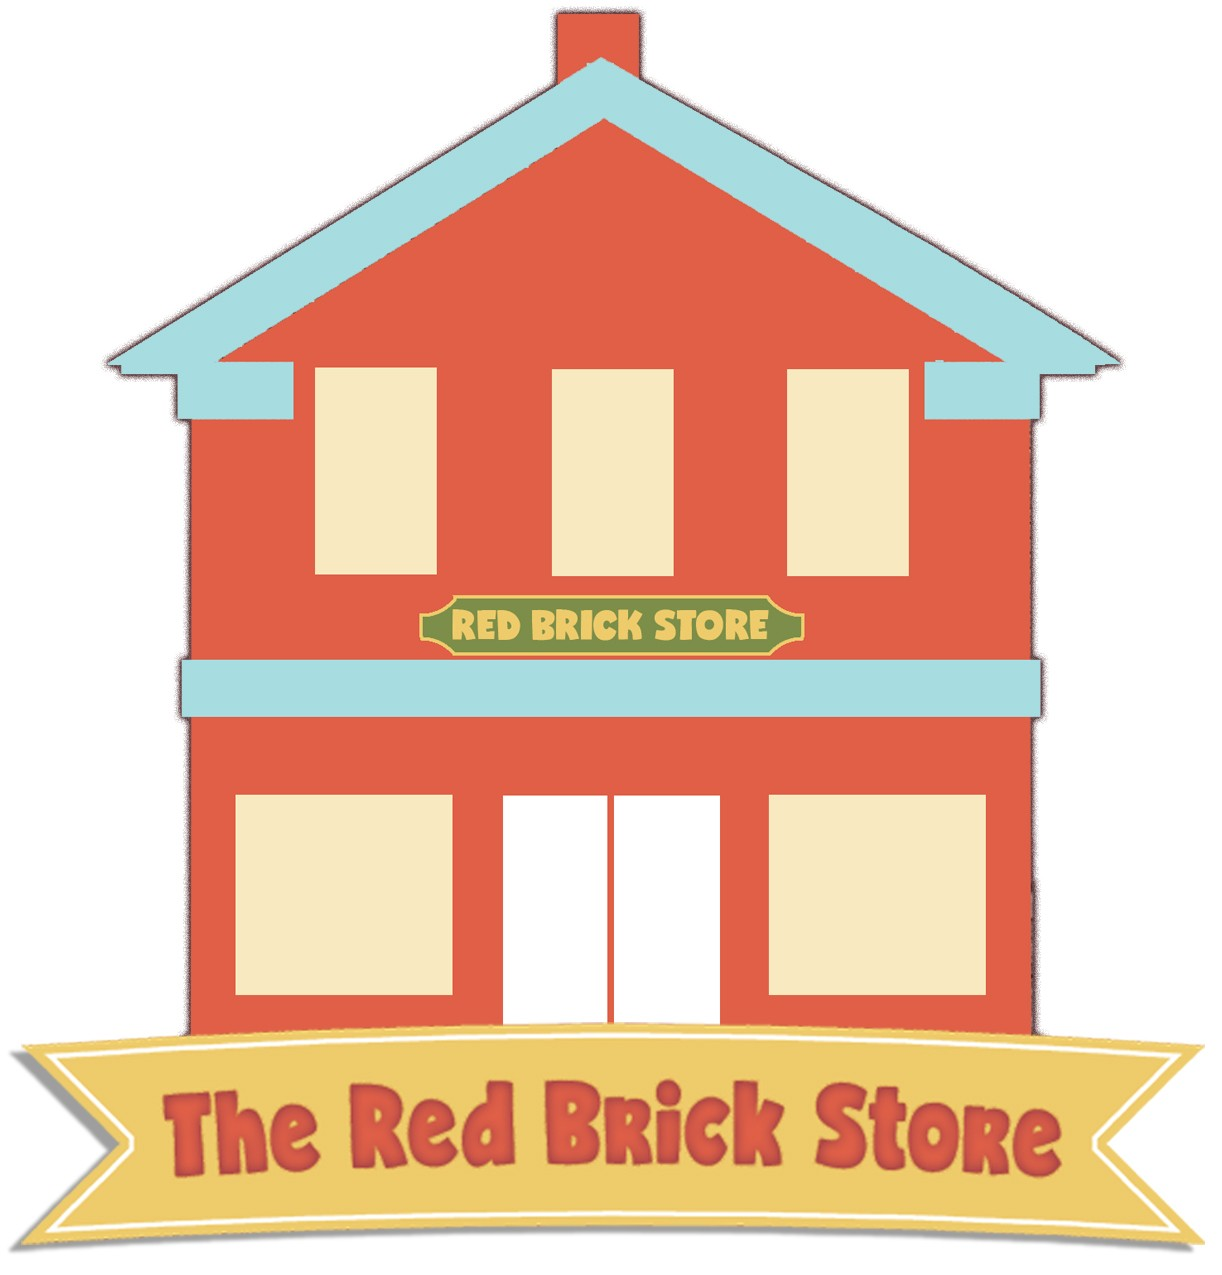 The Red Brick Store